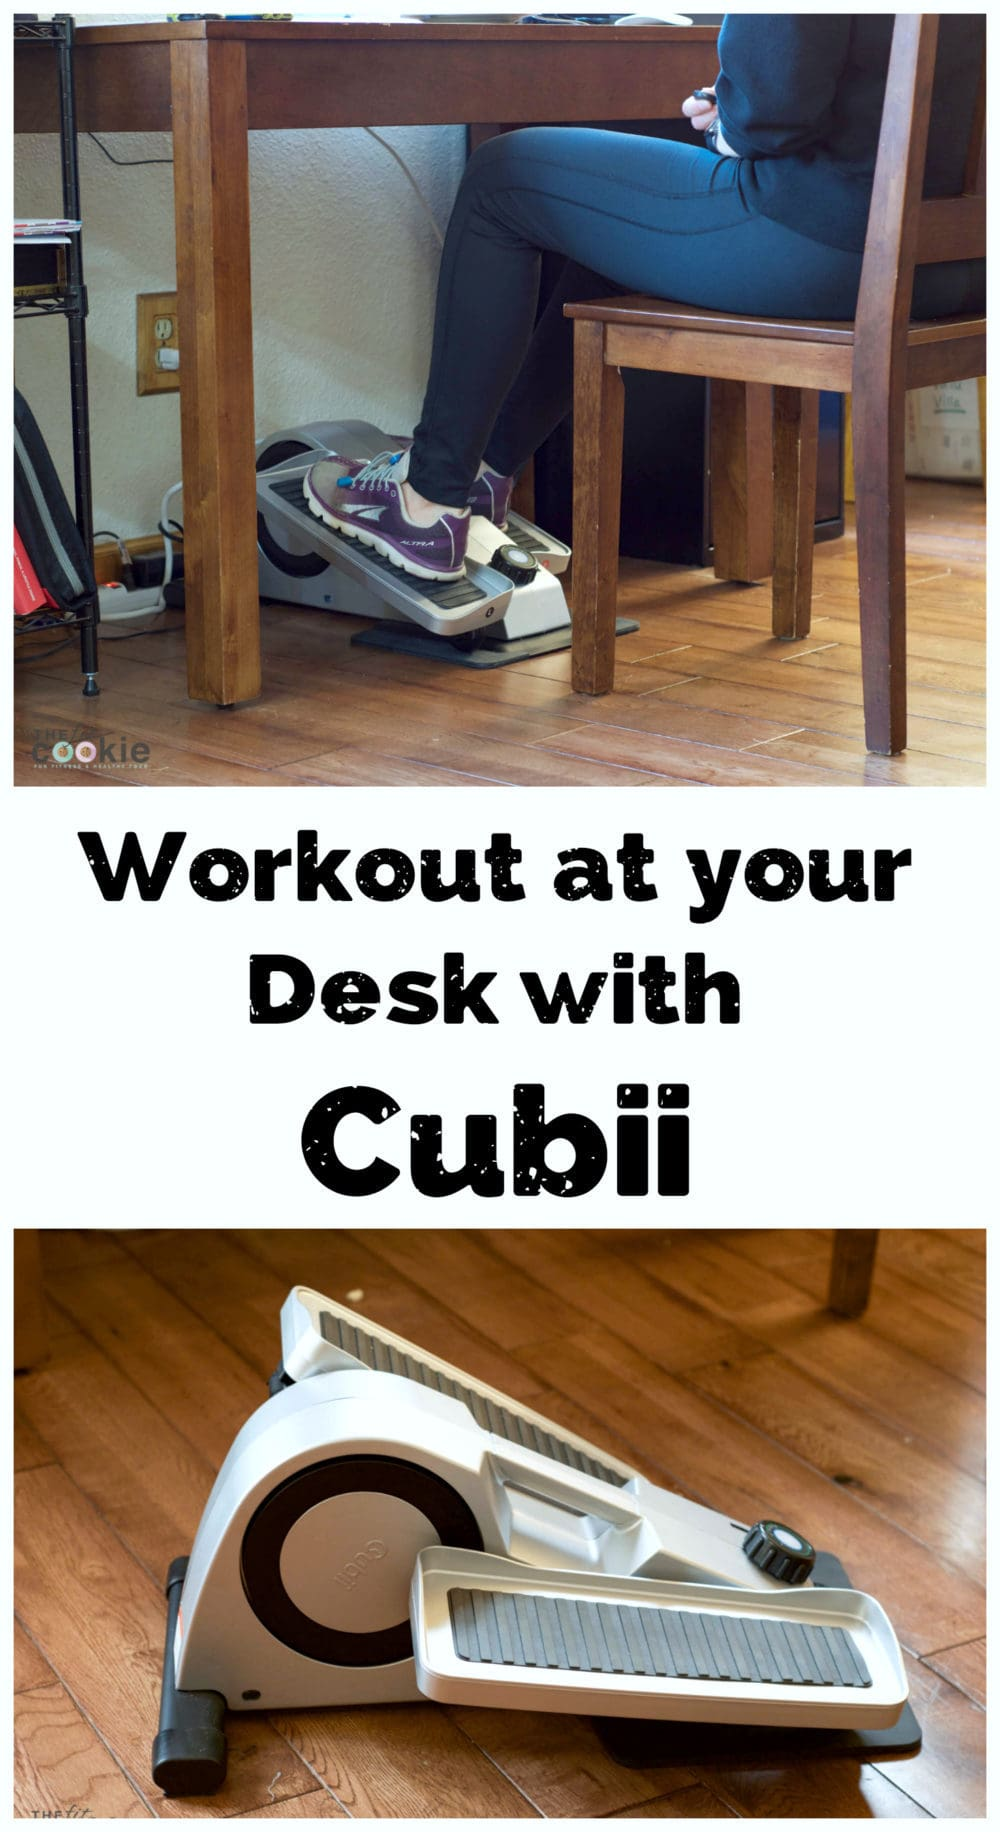 Looking for ways to add activity in to your work day? Check out Cubii, the under-your-desk mini elliptical that makes moving a bit easier! - #ad @MyCubii #fitness